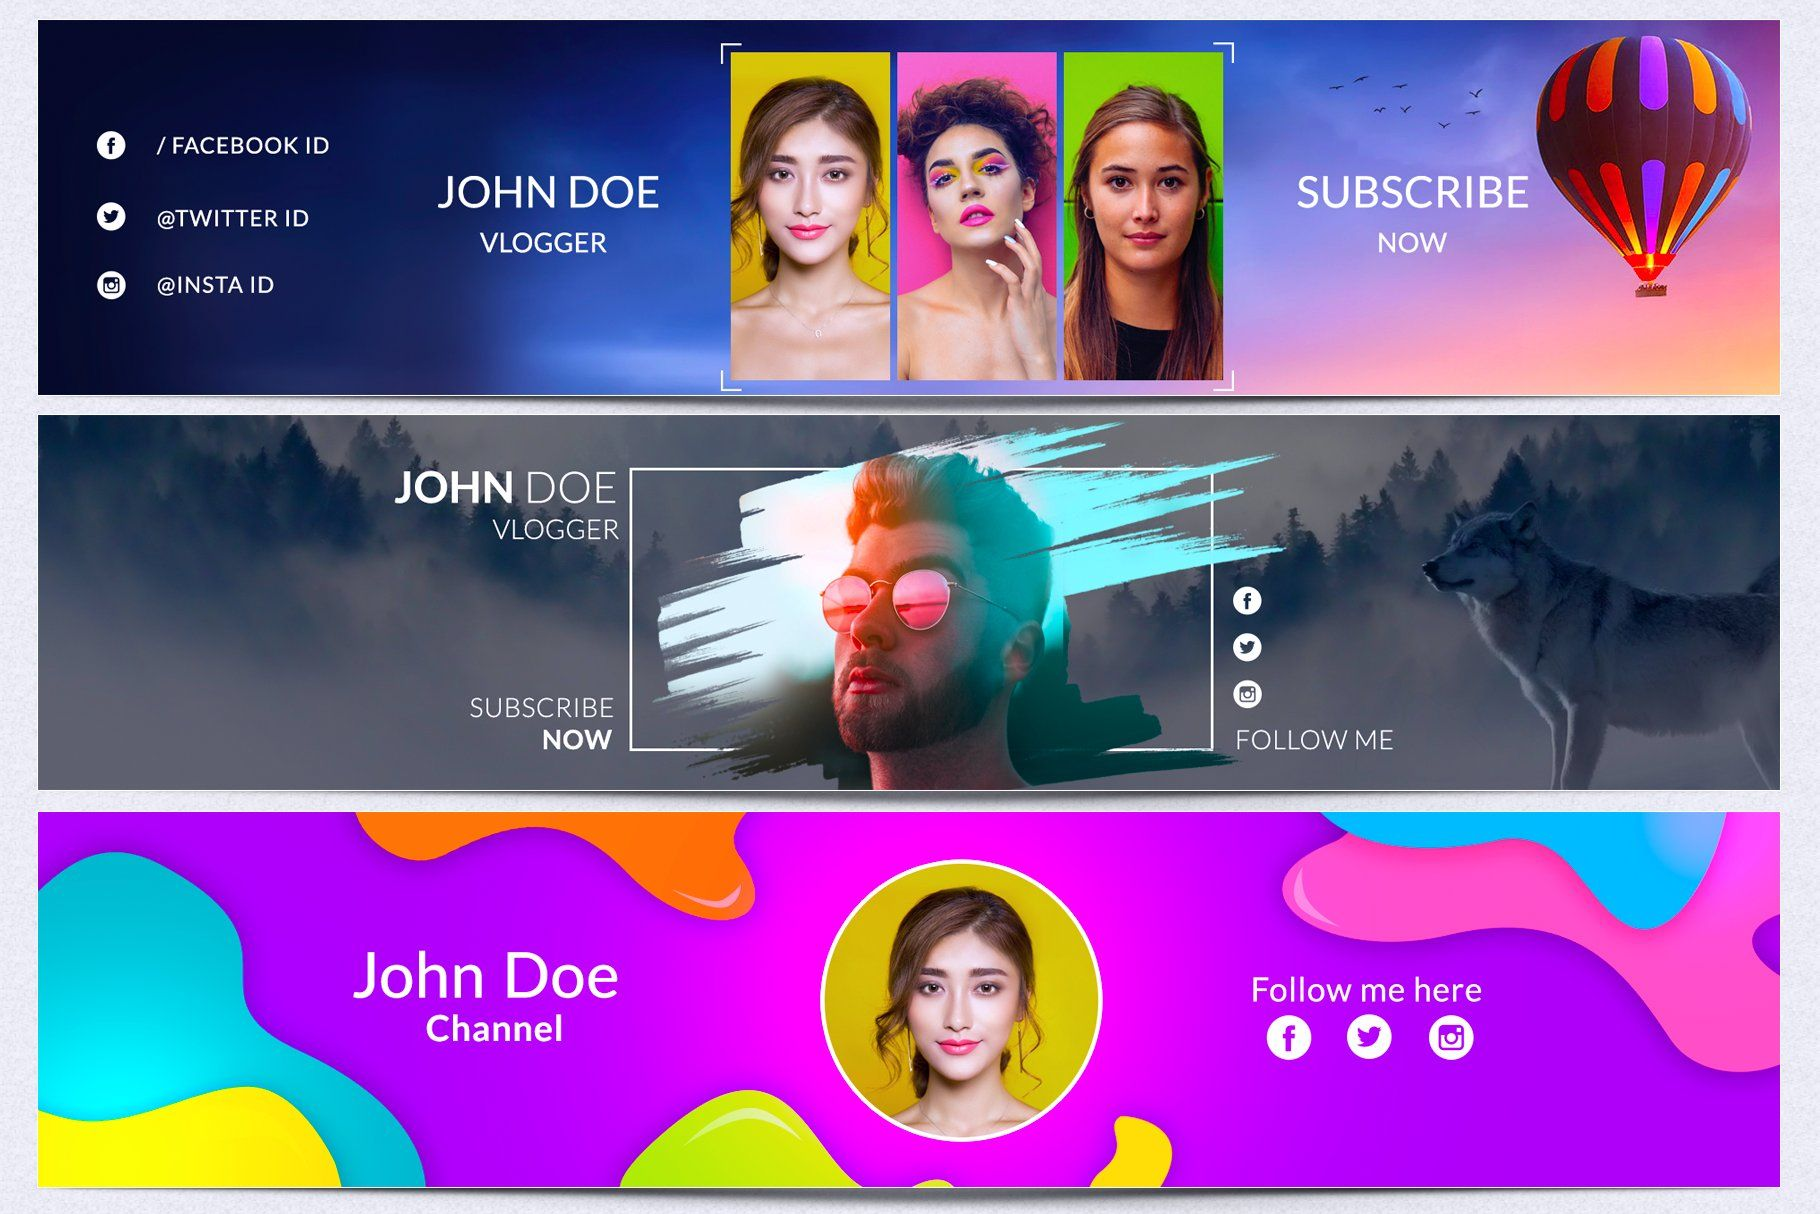 Offer Price Just 10 Youtube Channel Art Bundle Promote Your Youtube Channel With This Cool Looking Covers Eas In 2020 Youtube Channel Art Channel Art Youtube Banners